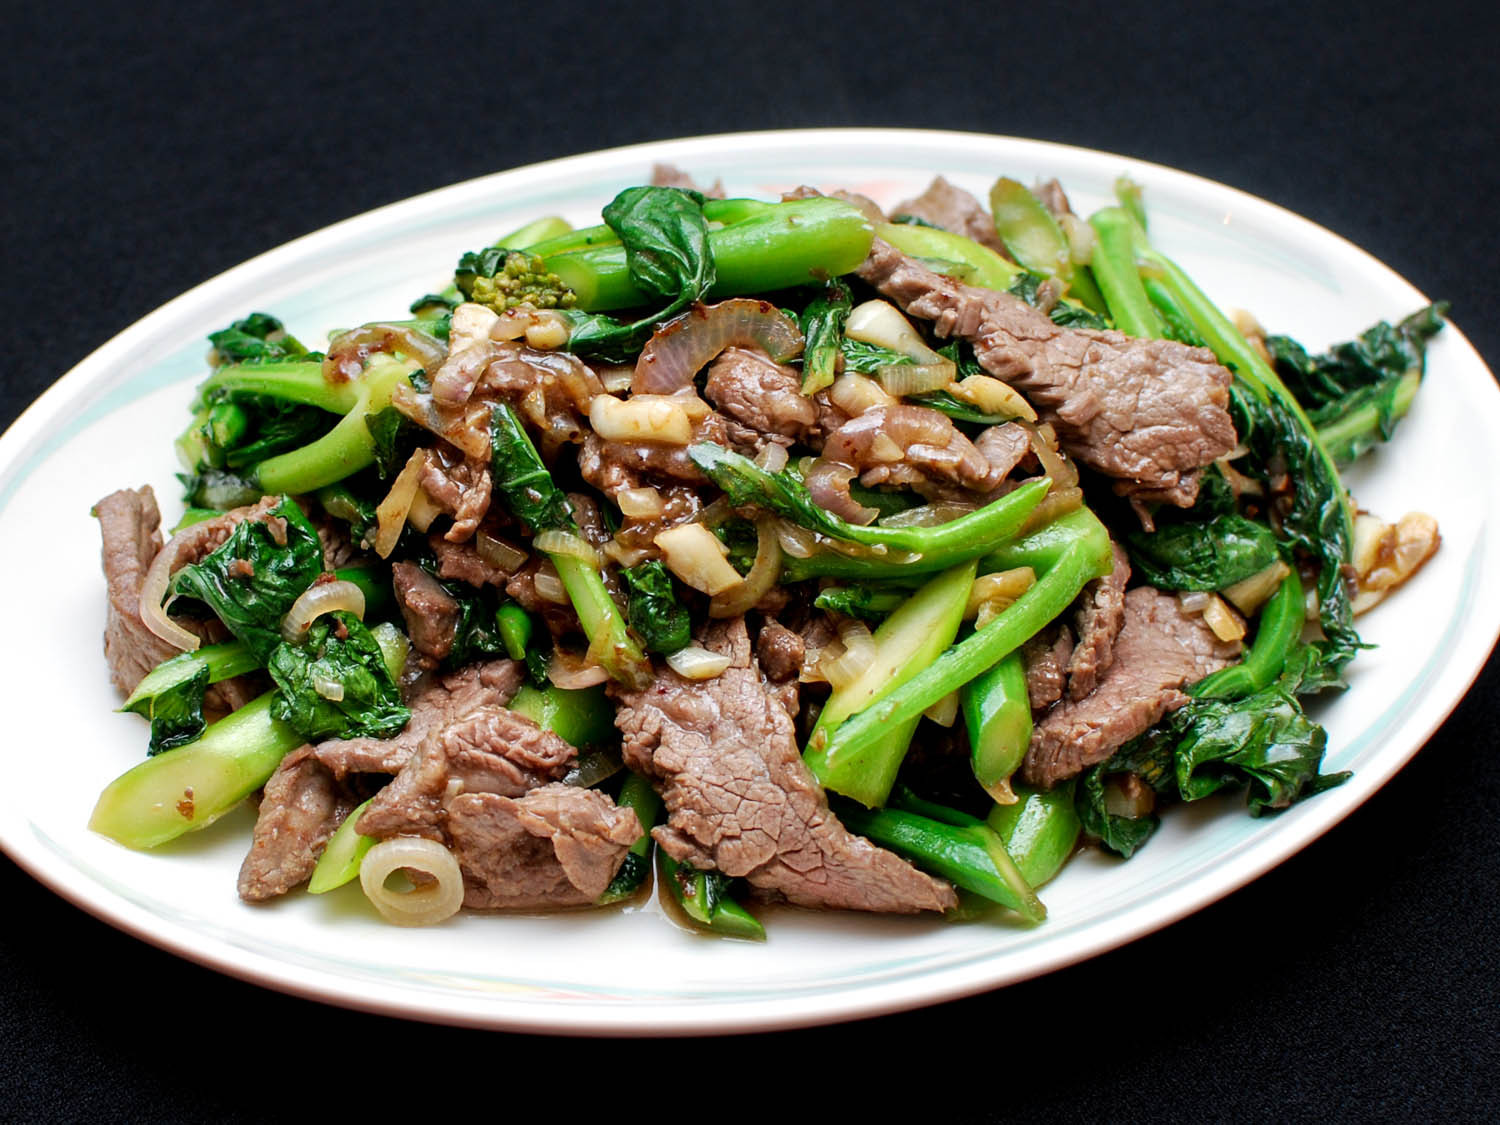 Chinese Beef And Broccoli  Stir Fried Beef With Chinese Broccoli Recipe